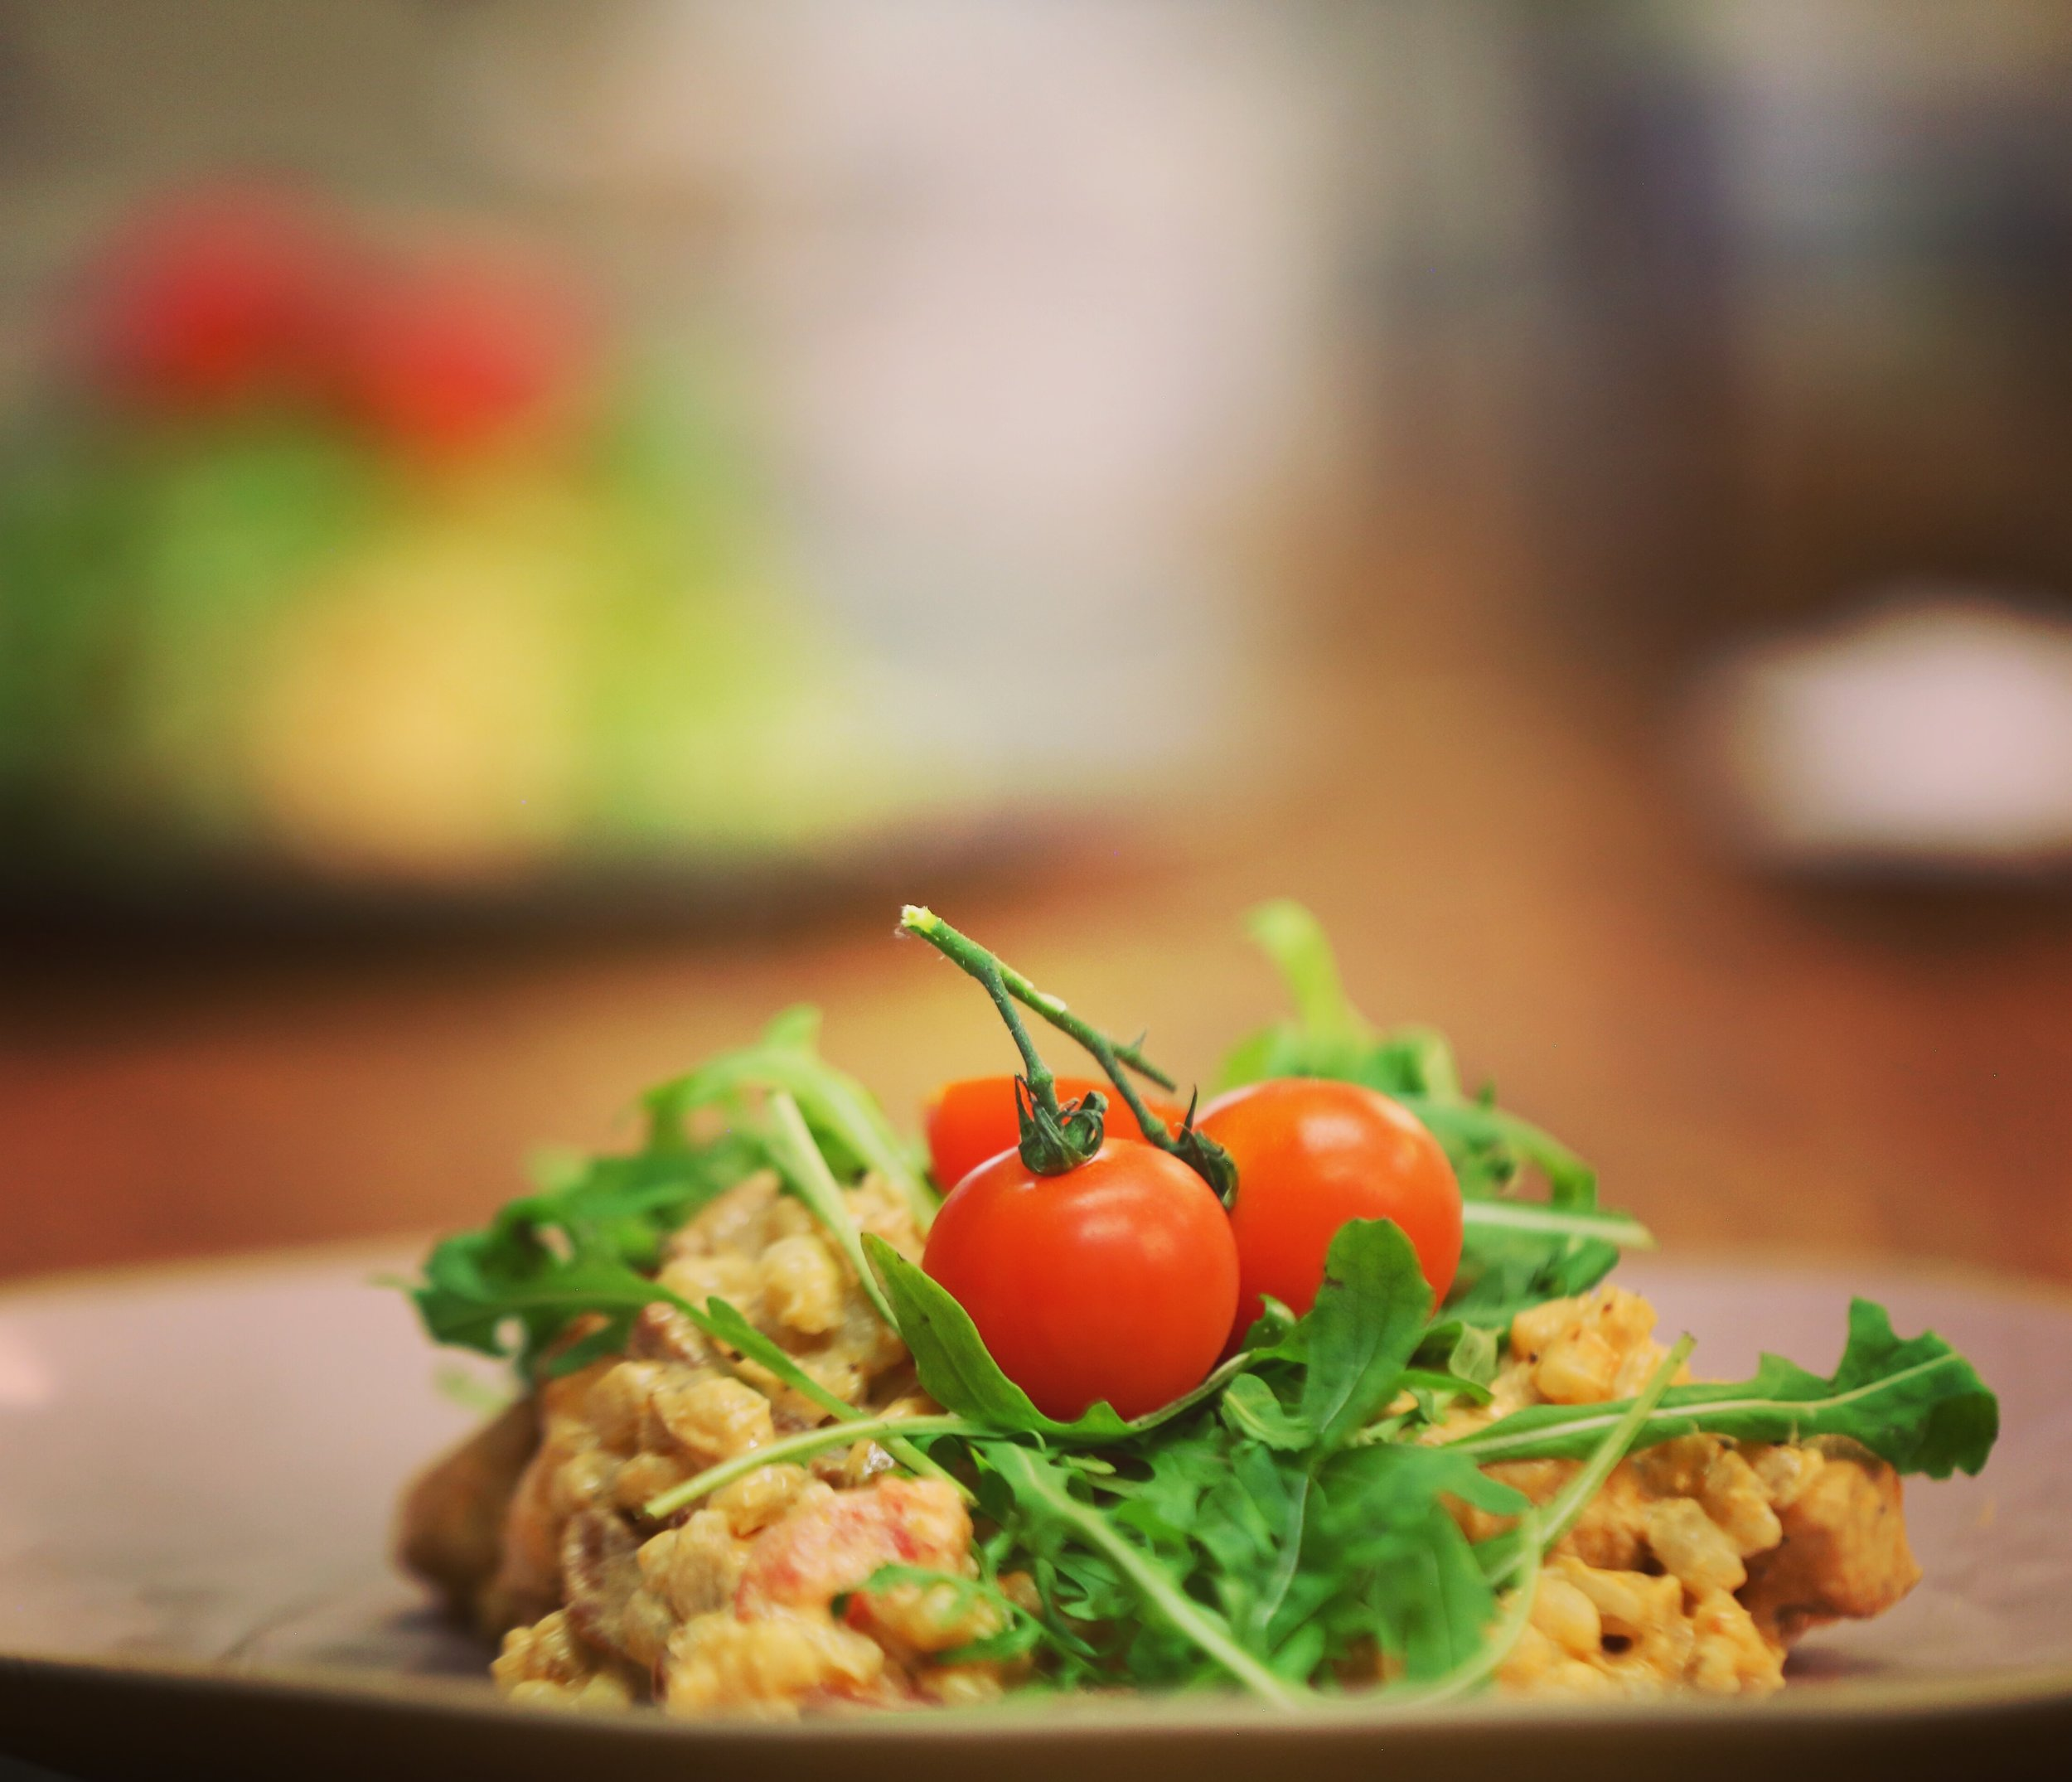 The finished product: Tom Mitchell's Pearl Barley, Chicken & Chorizo Risotto